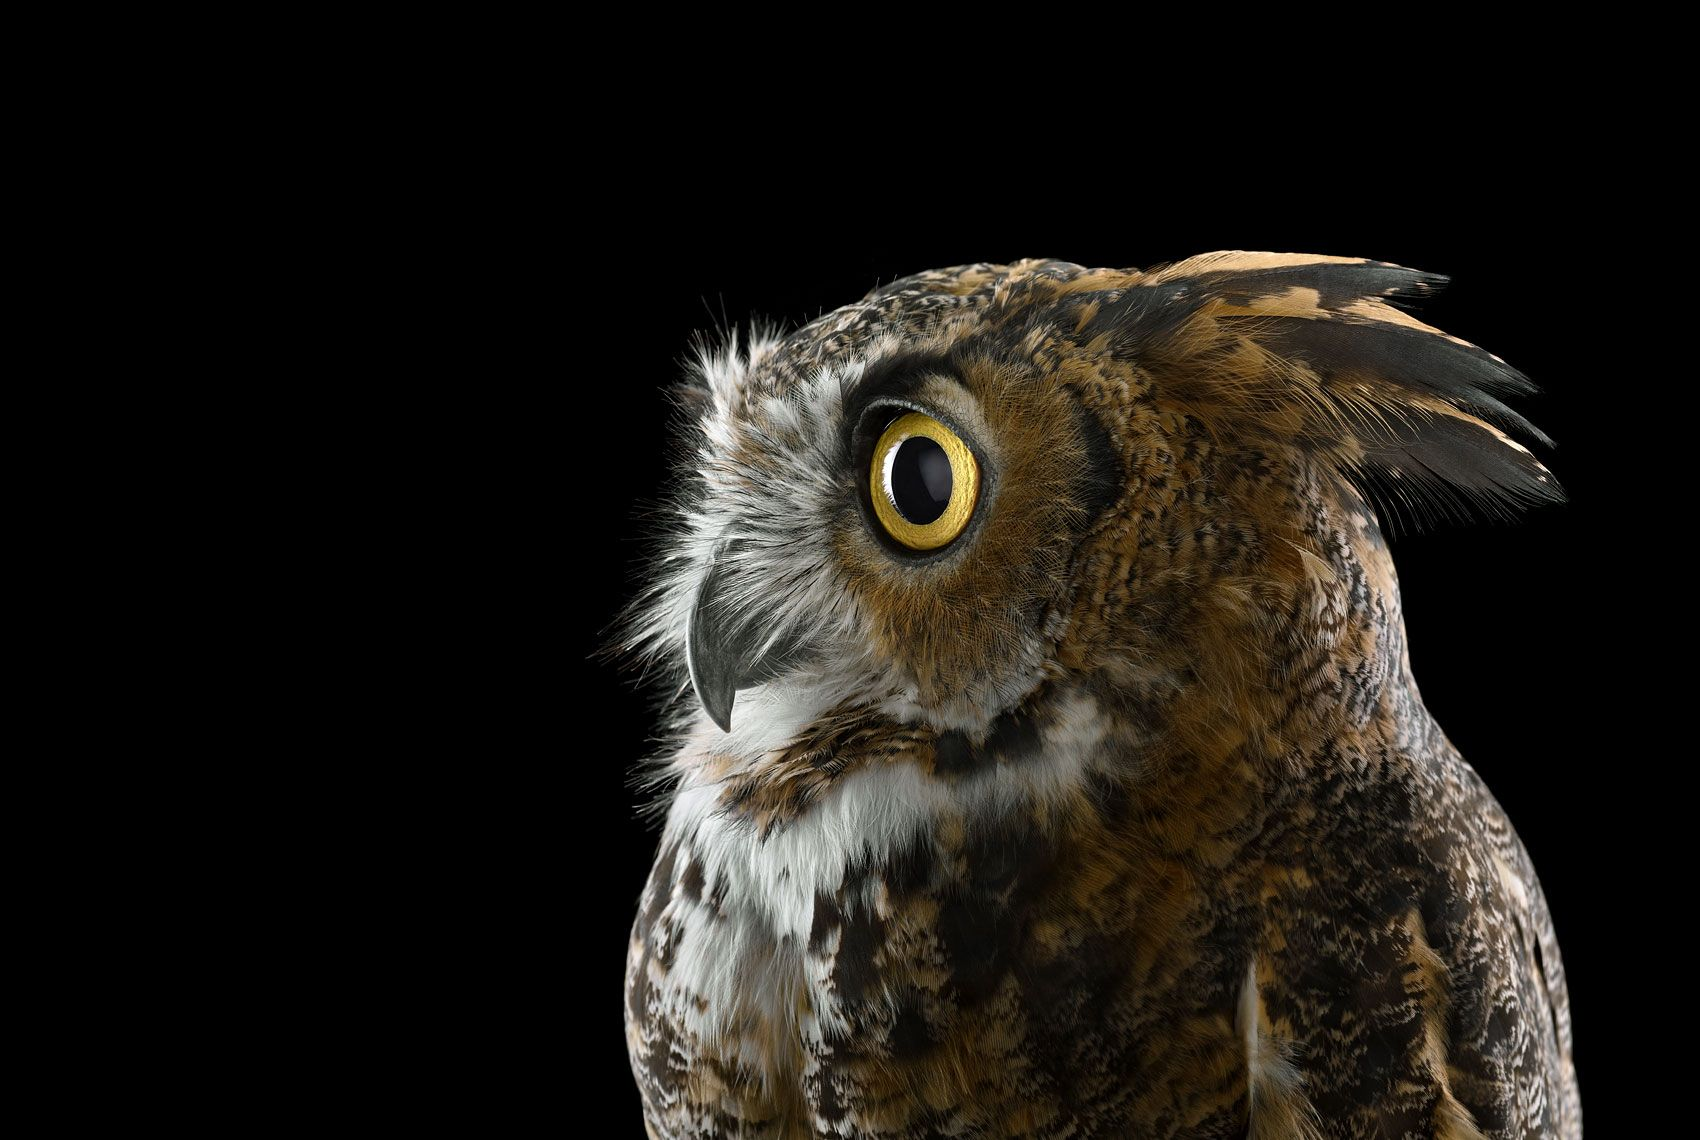 Great Horned Owl #1, Espanola, NM, 2011,Brad Wilson,Photographie